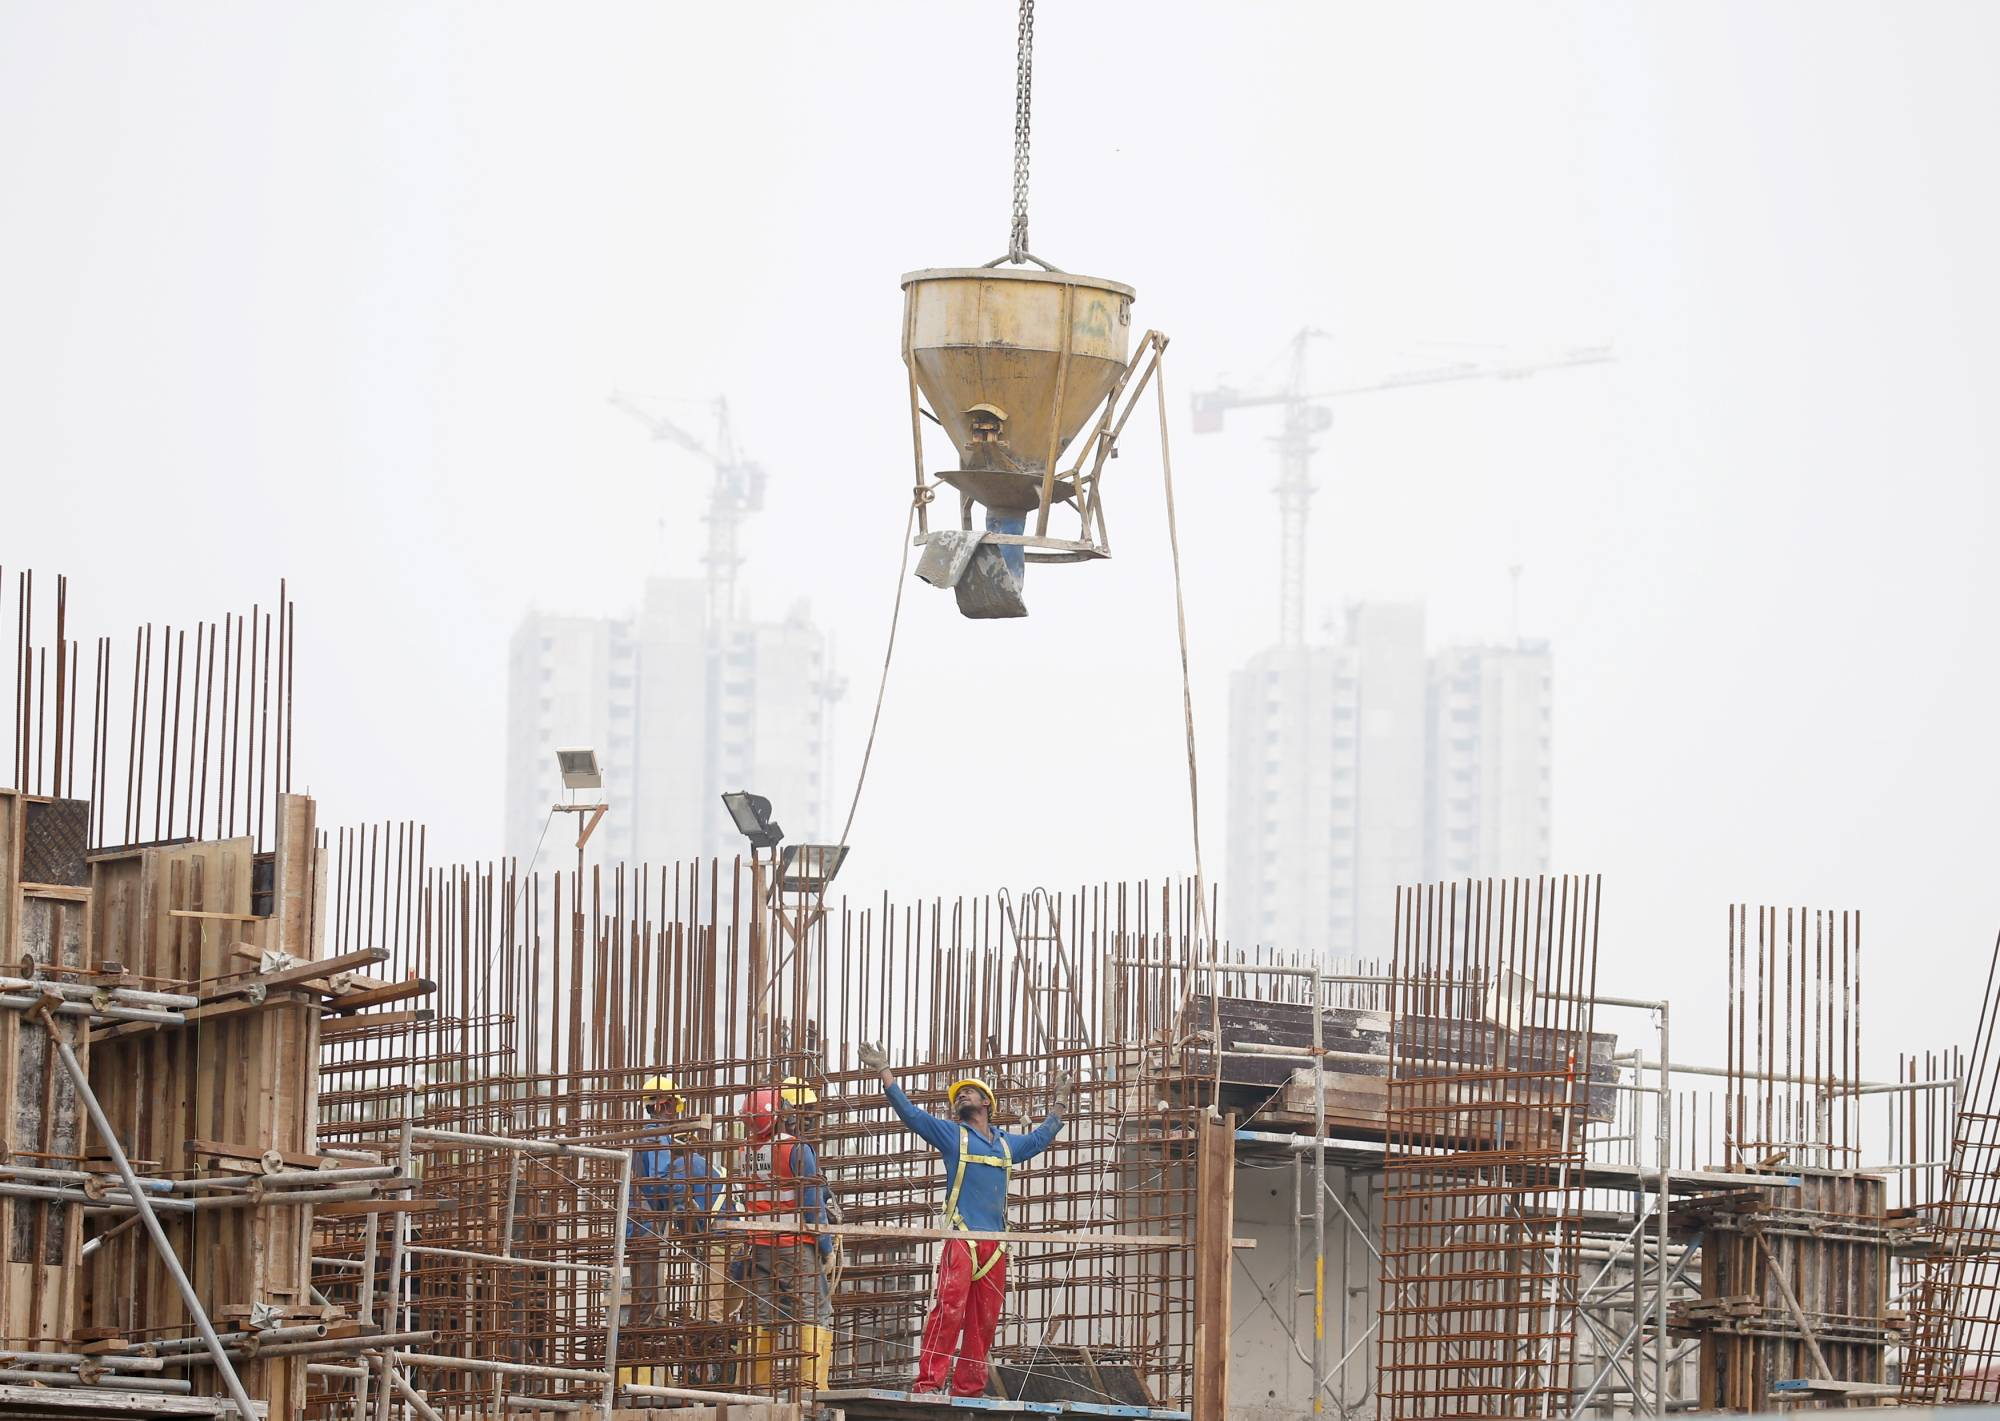 Construction workers prepare to pour concrete in Singapore in September 2015. It's been an agonizing year for the construction industry in Singapore. Activity fell 44.7% in the third quarter from a year earlier.     | REUTERS